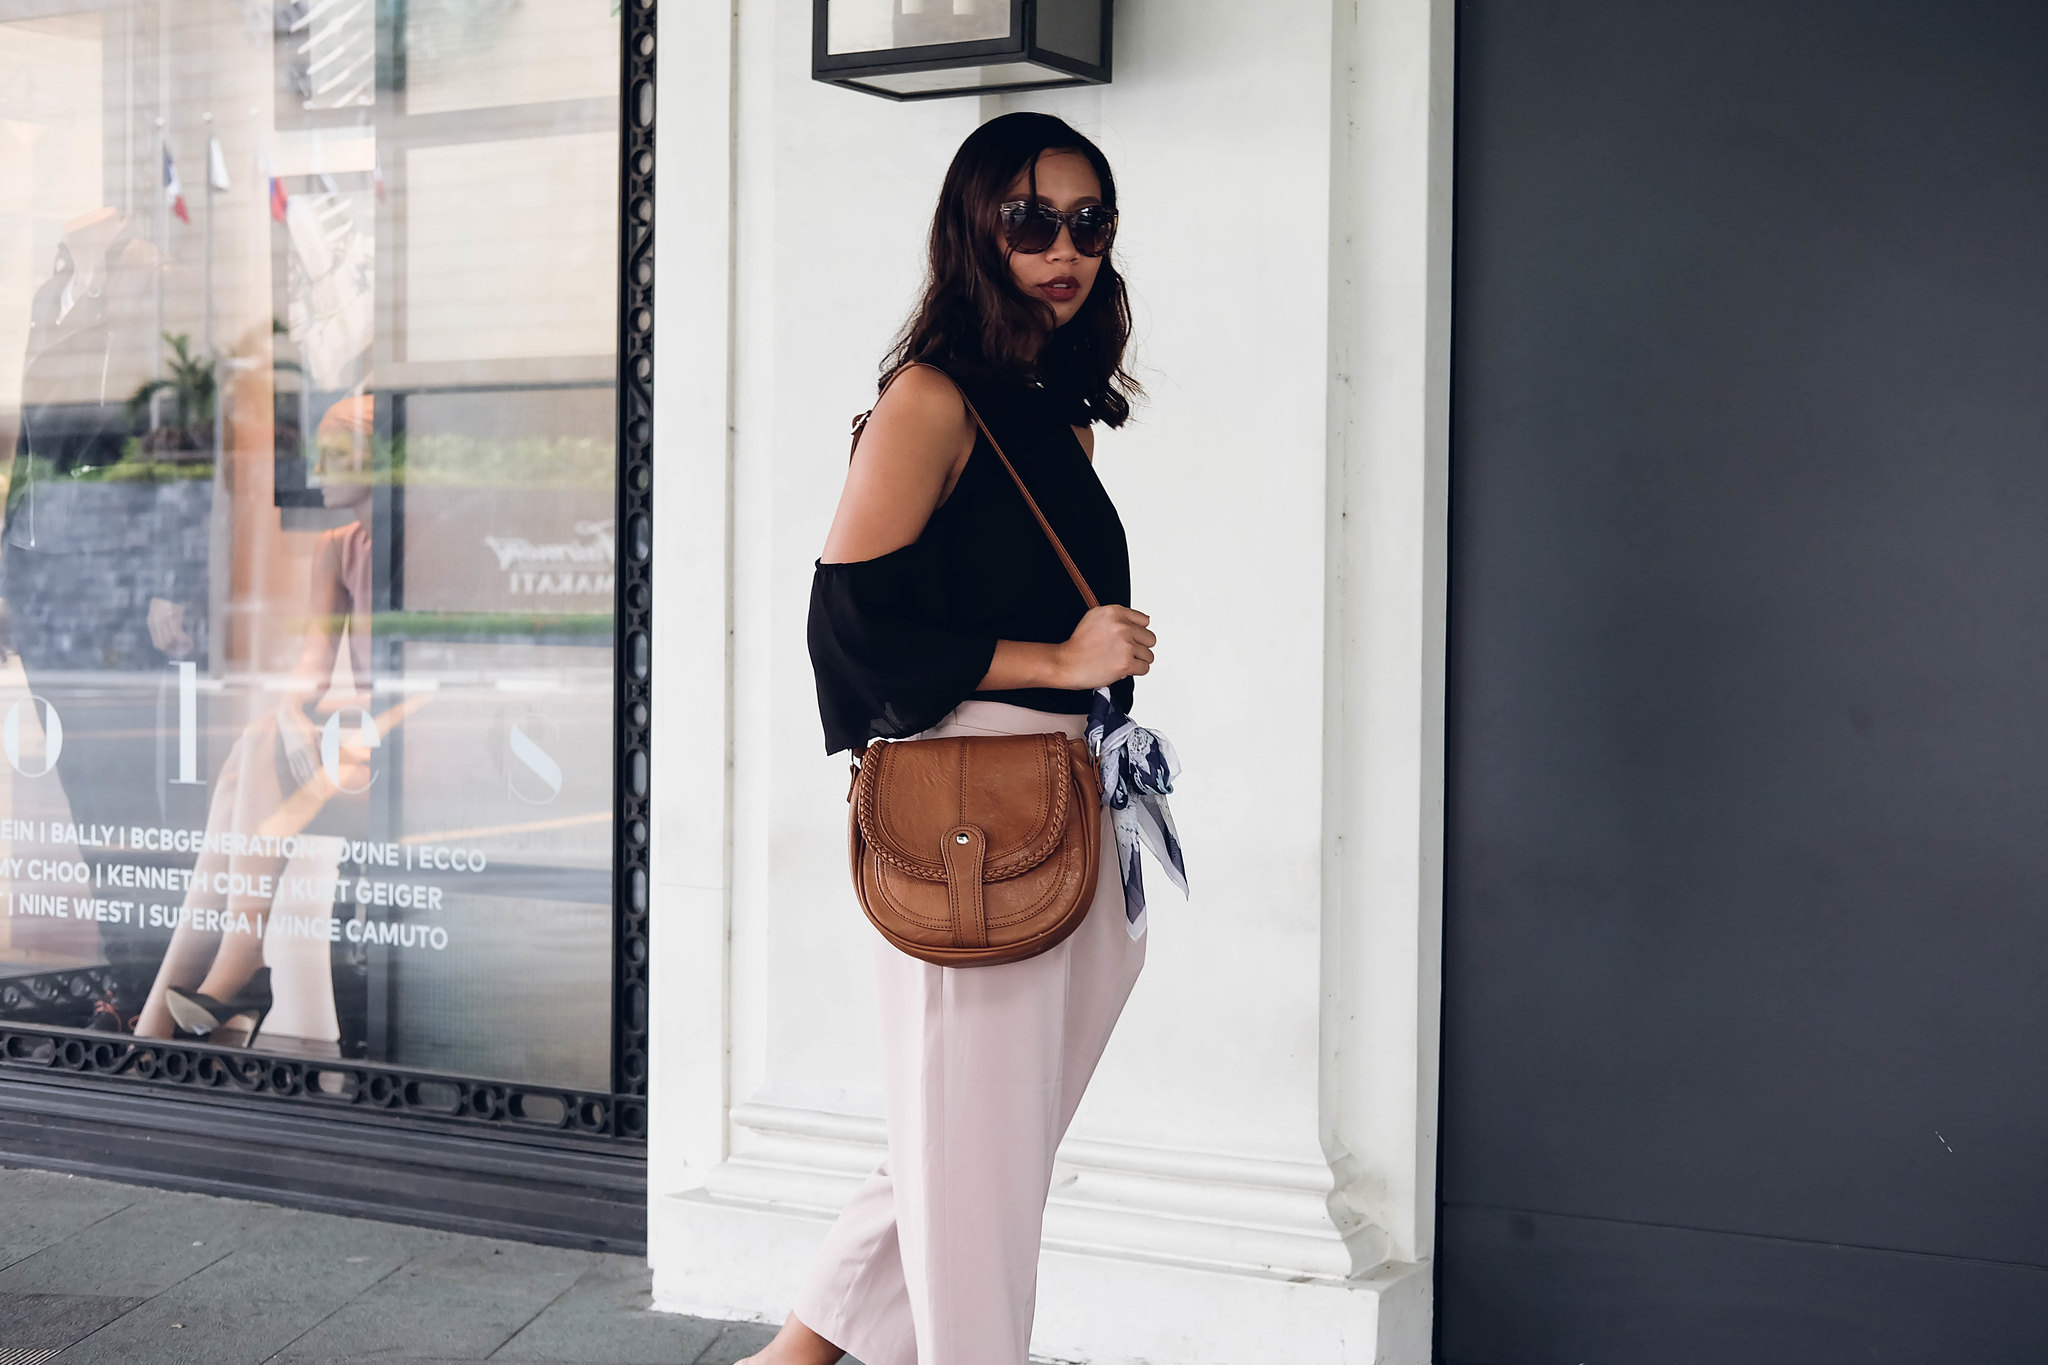 uniqlo pants parisian bag